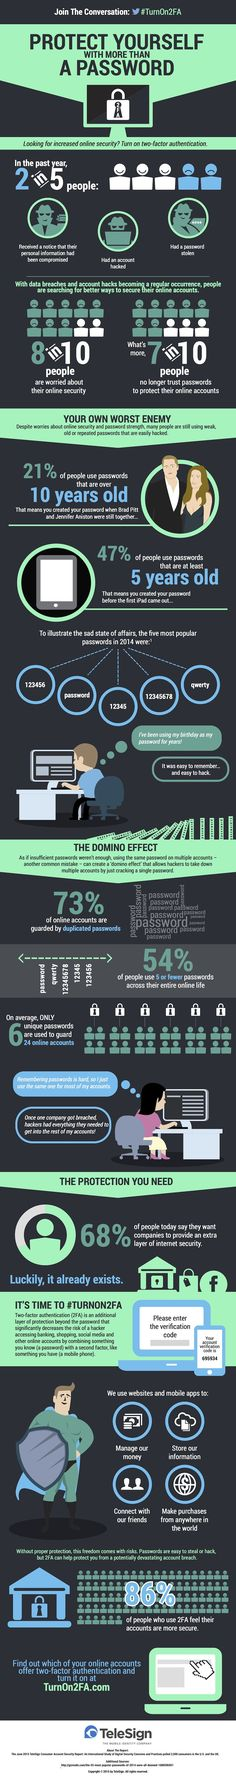 #Infographic Protect yourself with more than a password